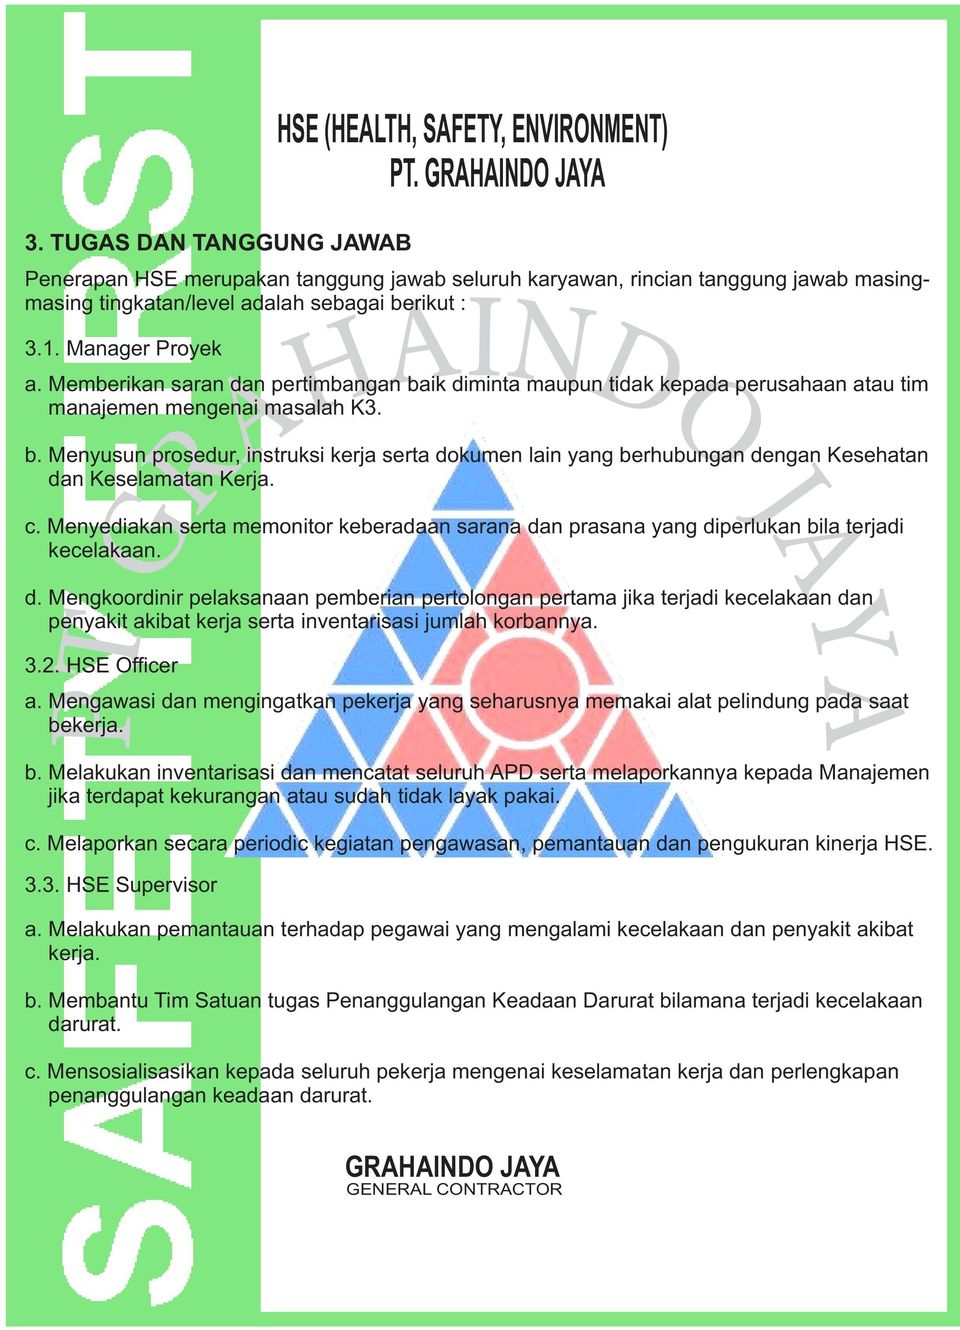 Health Safety Environment Hse Department Pt Grahaindo Jaya General Contractor Pdf Free Download